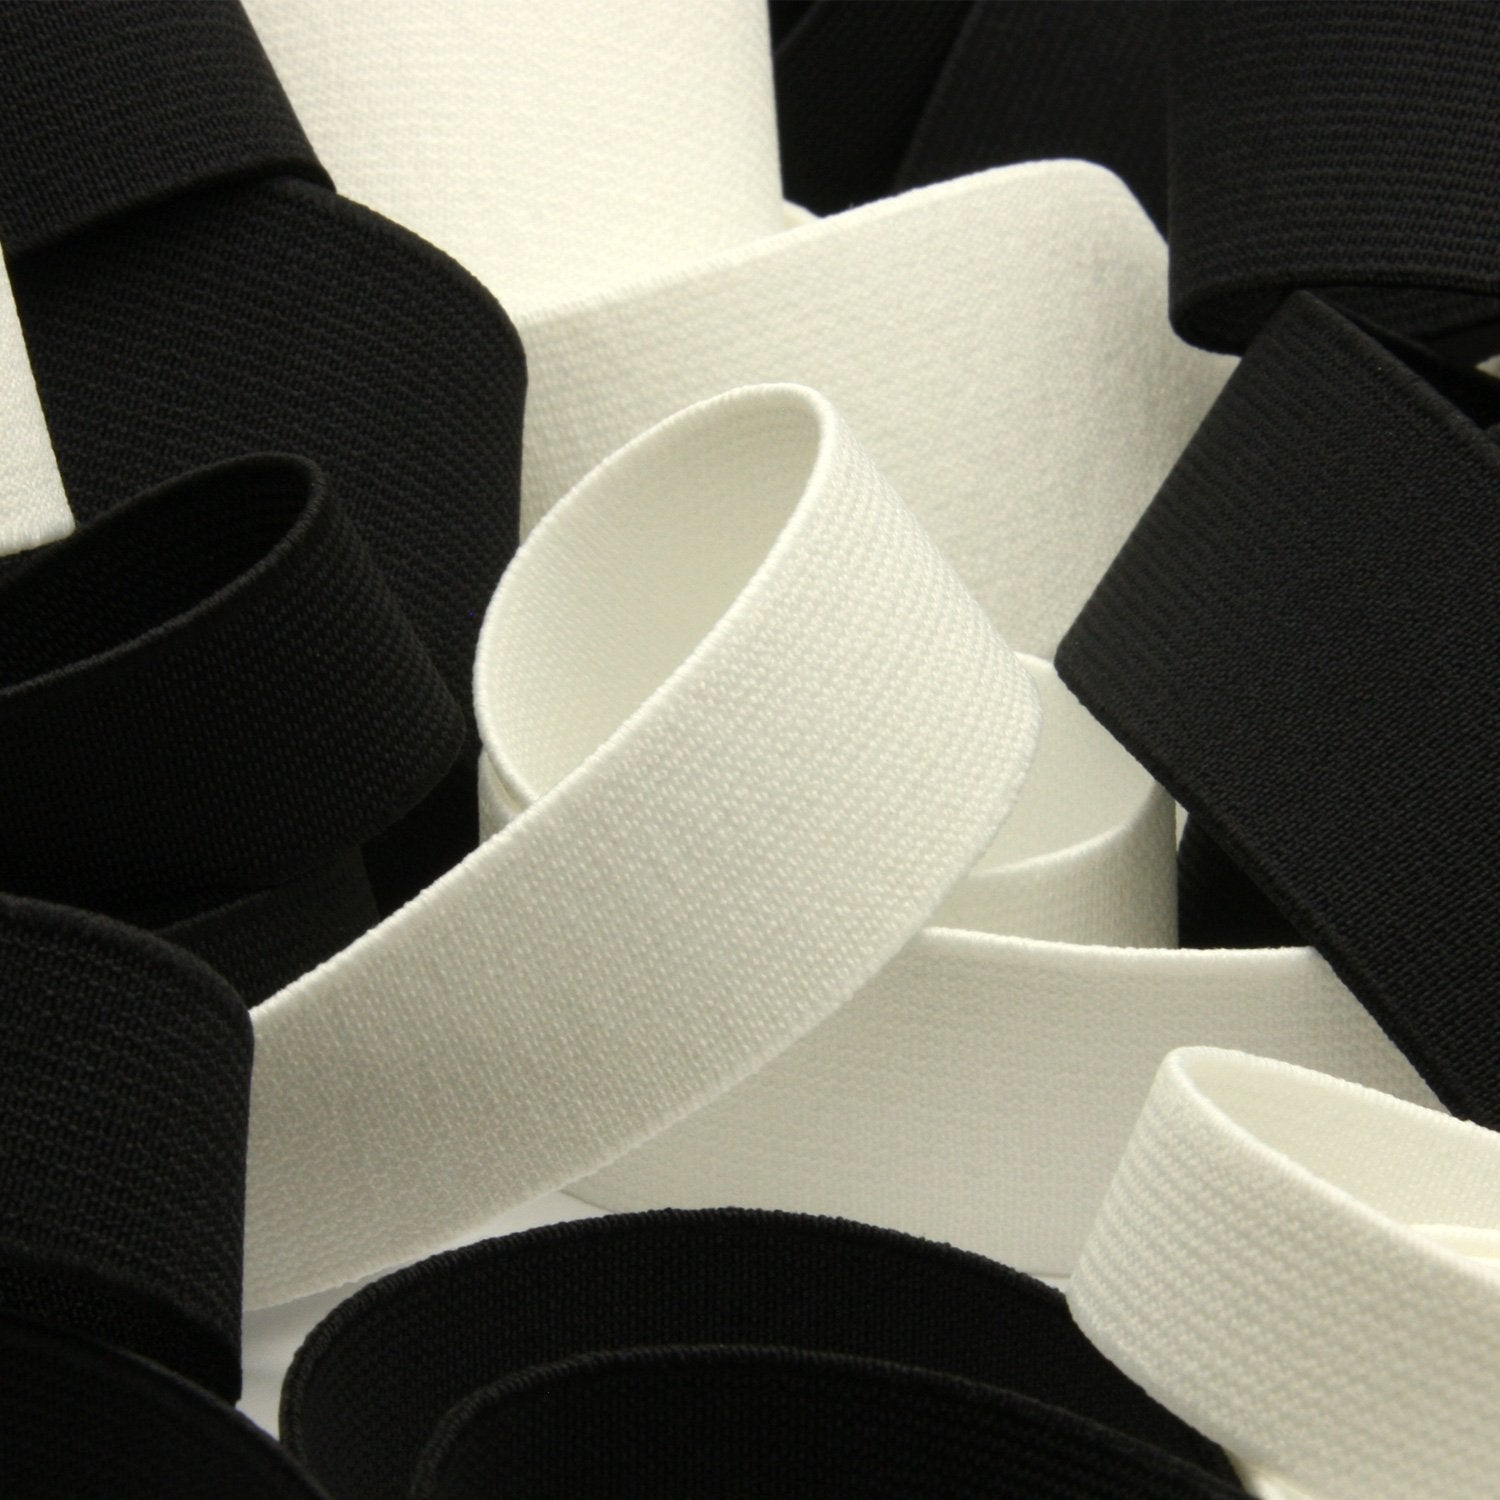 FUJIYAMA RIBBON [Wholesale] Hard Type Inside Belt 15mm 30 Meters Roll Off White